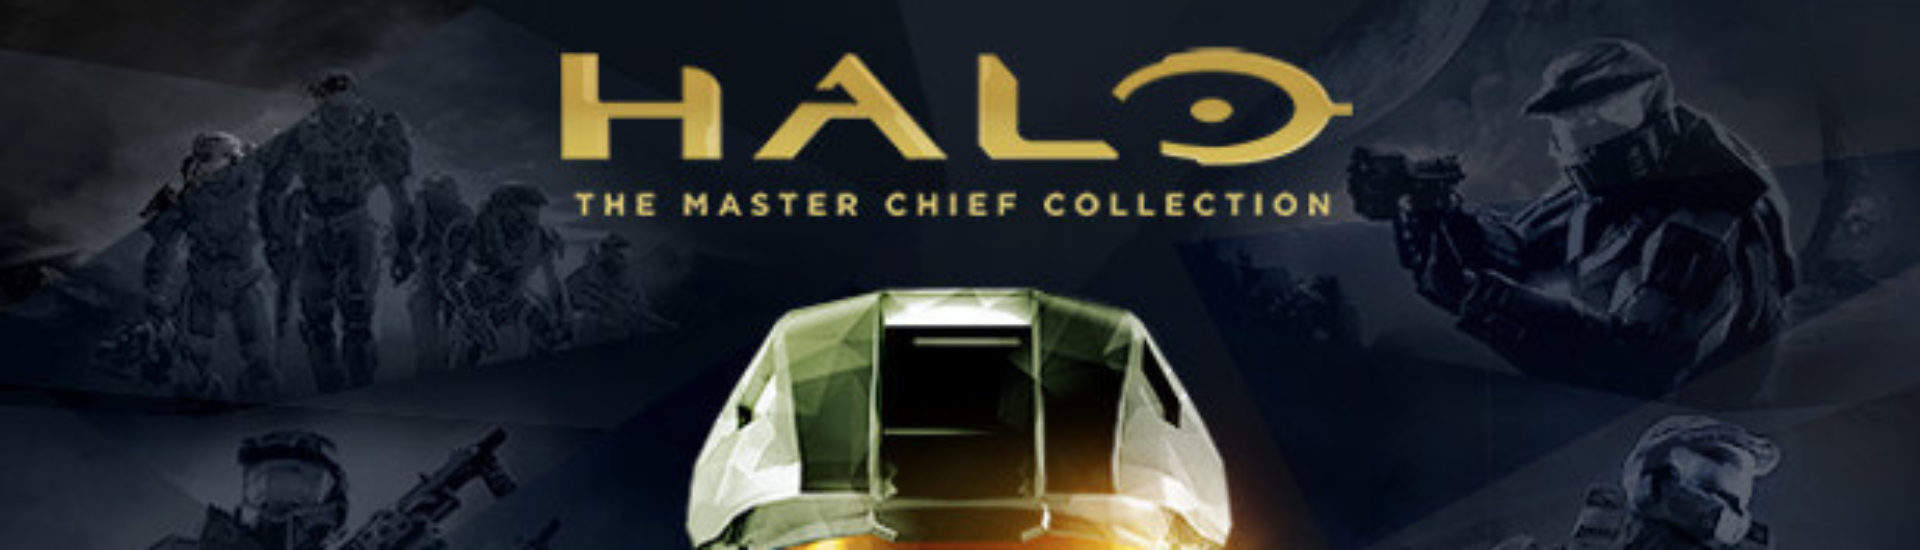 Halo Master Chief Collection: Nostalgiefeeling auf dem PC?